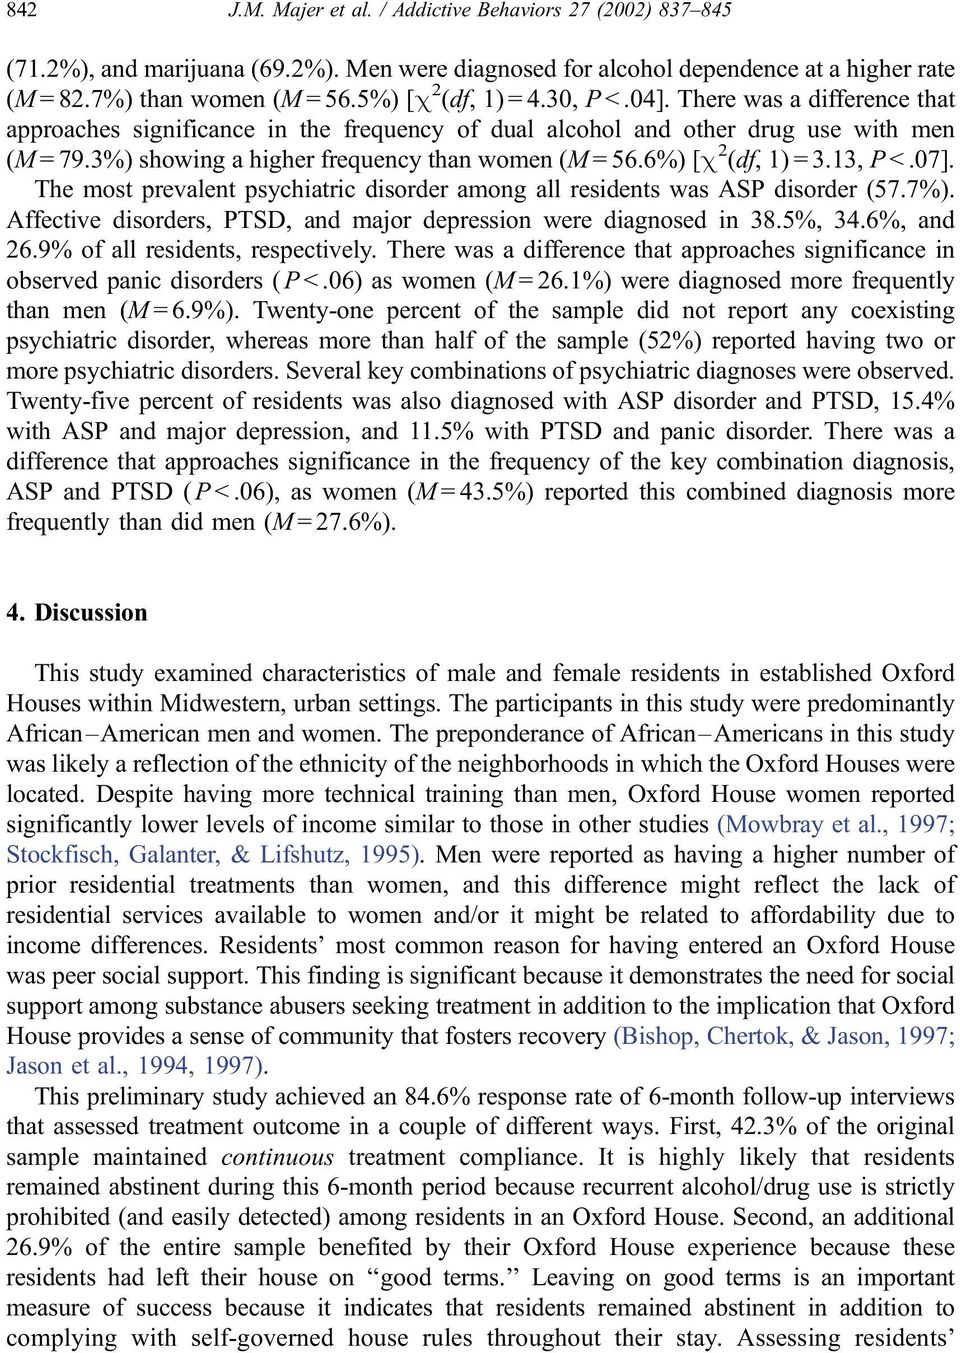 3%) showing a higher frequency than women (M = 56.6%) [c 2 (df, 1) = 3.13, P <.07]. The most prevalent psychiatric disorder among all residents was ASP disorder (57.7%).